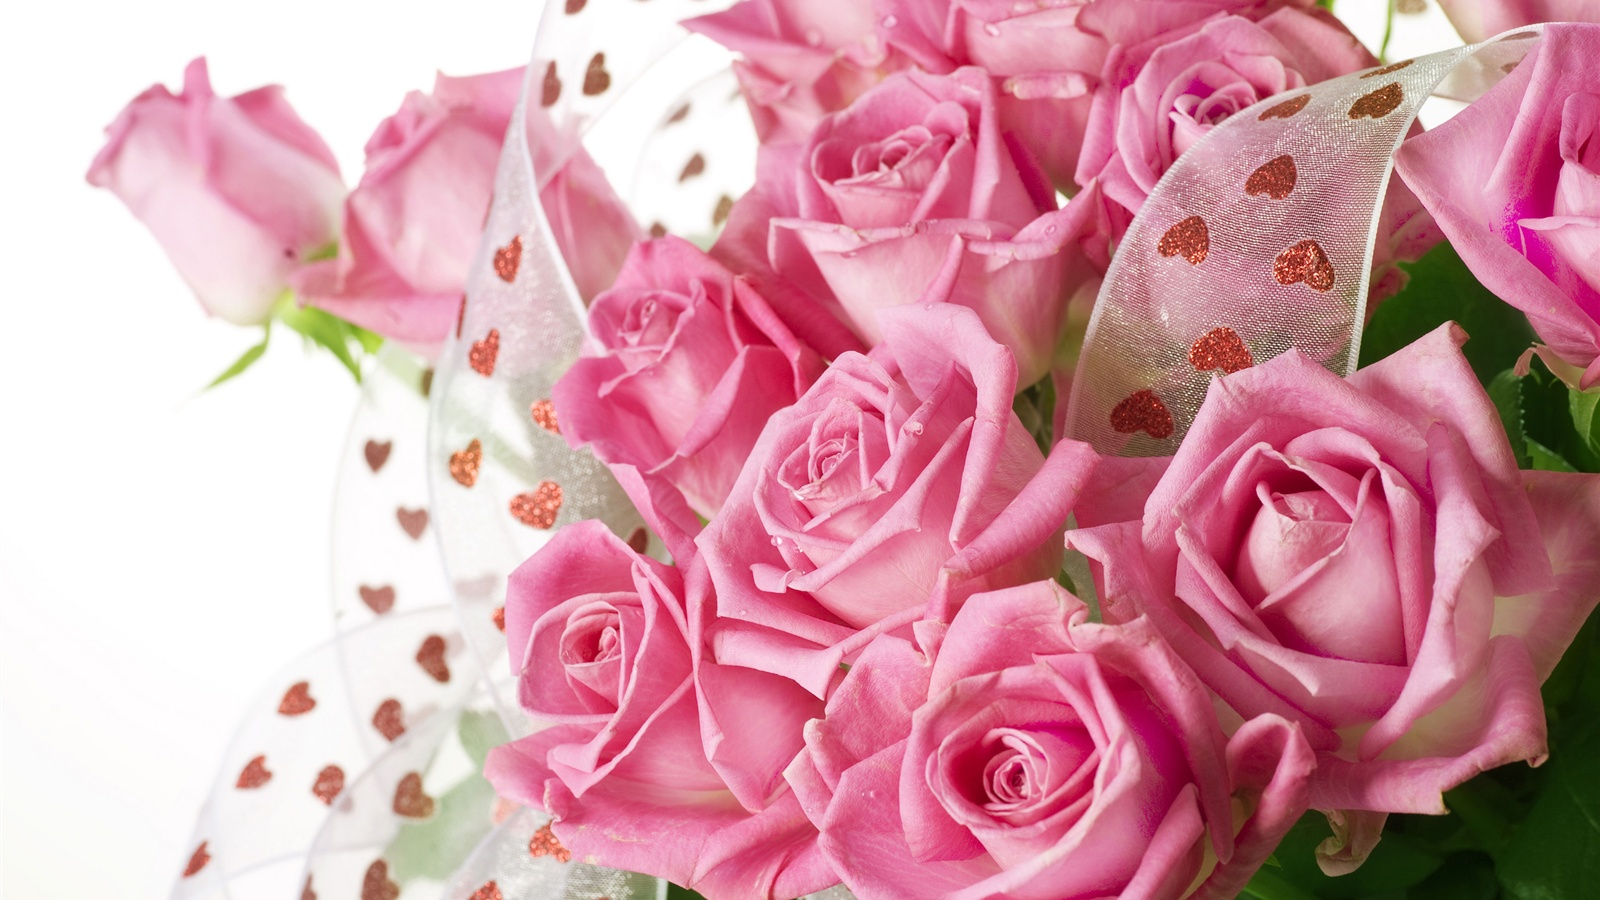 2560x1600 hd - Pink roses and hearts wallpaper ...